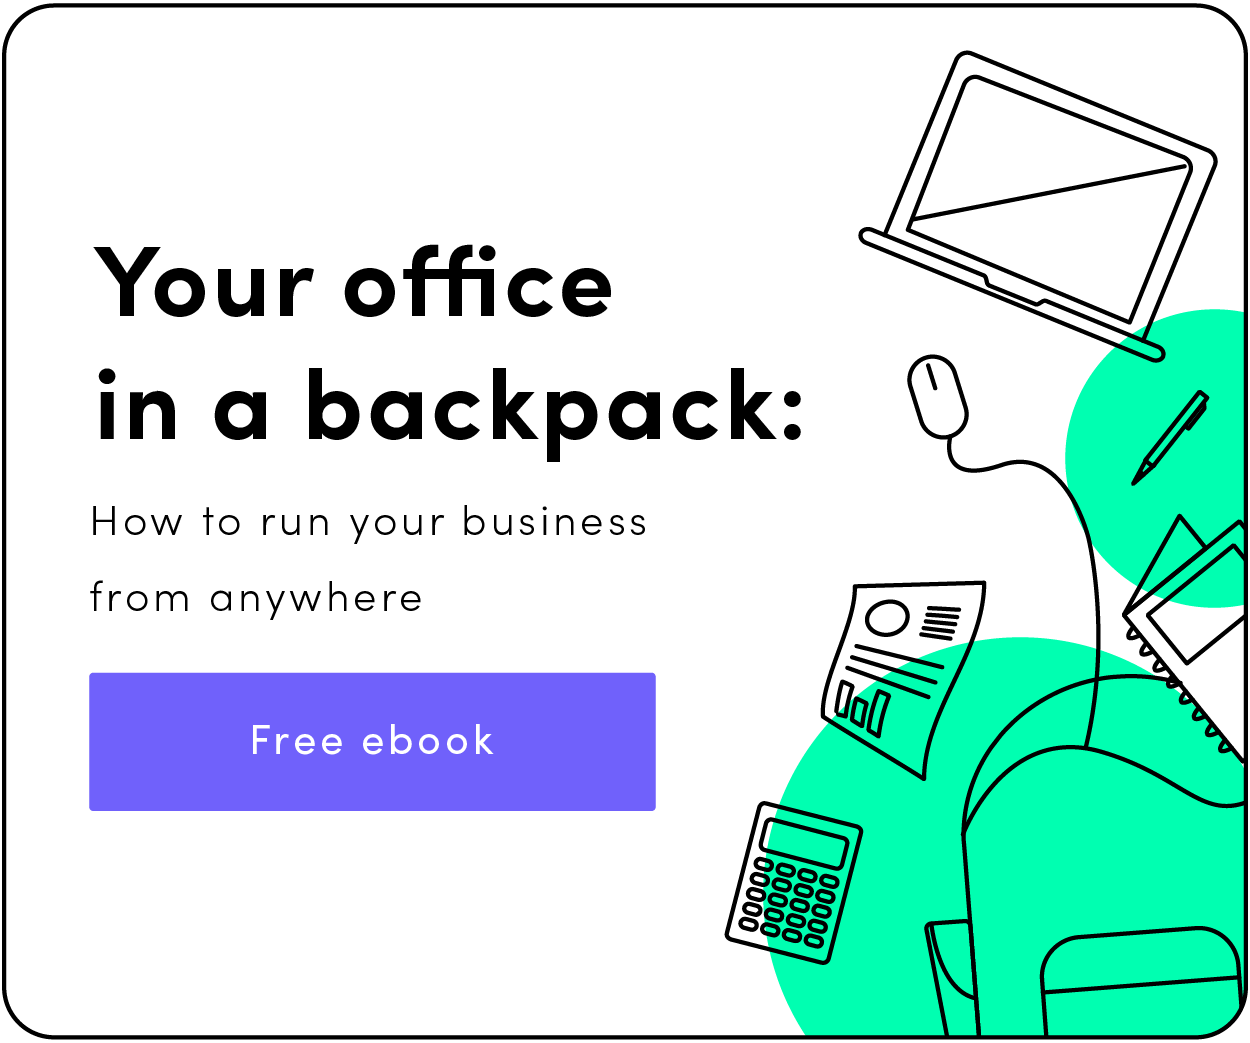 Download our guide to running your office from anywhere